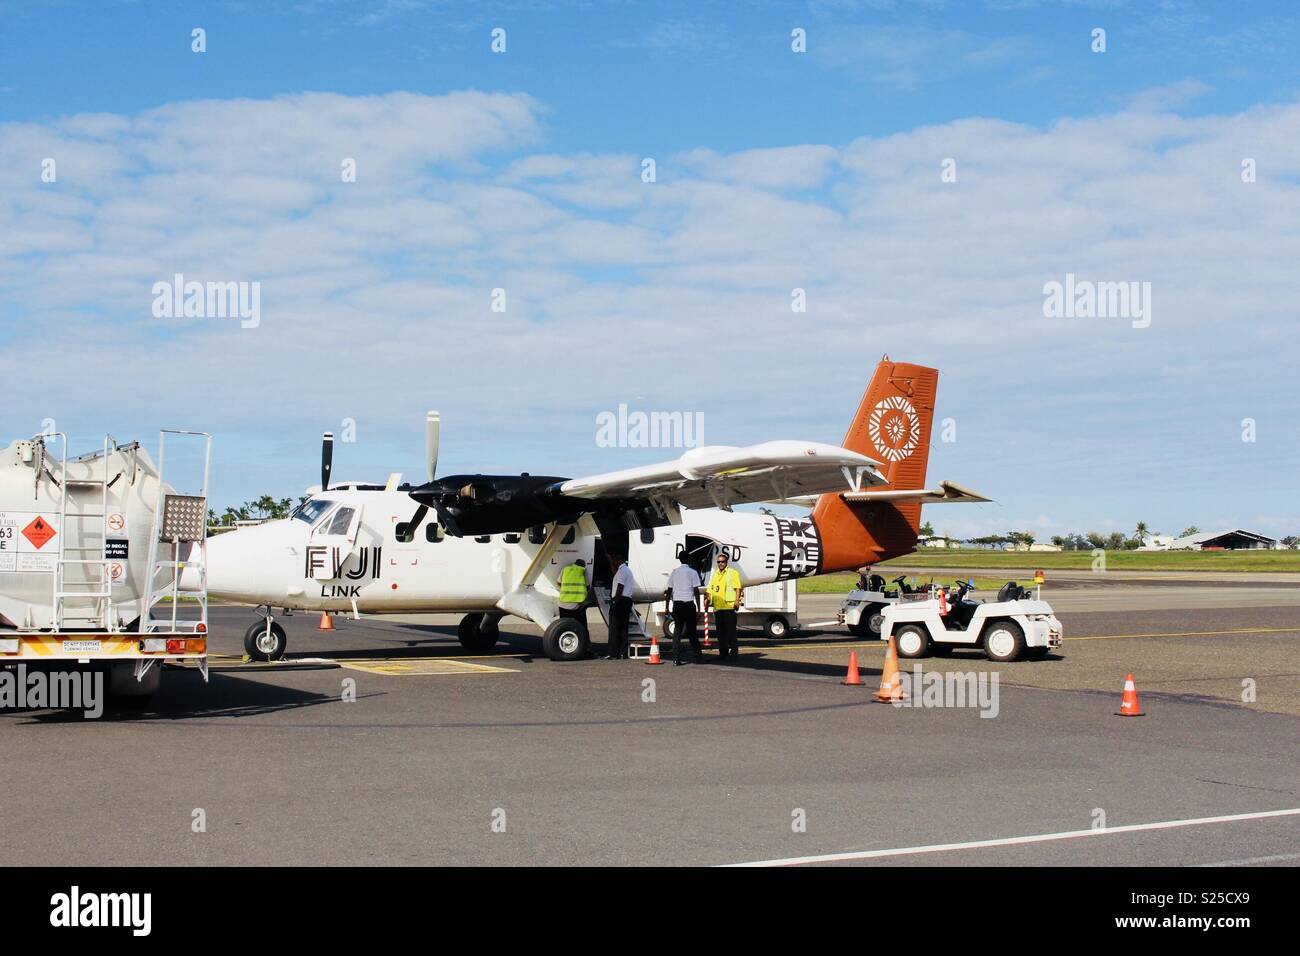 Fiji Airport Stock Photos & Fiji Airport Stock Images - Alamy